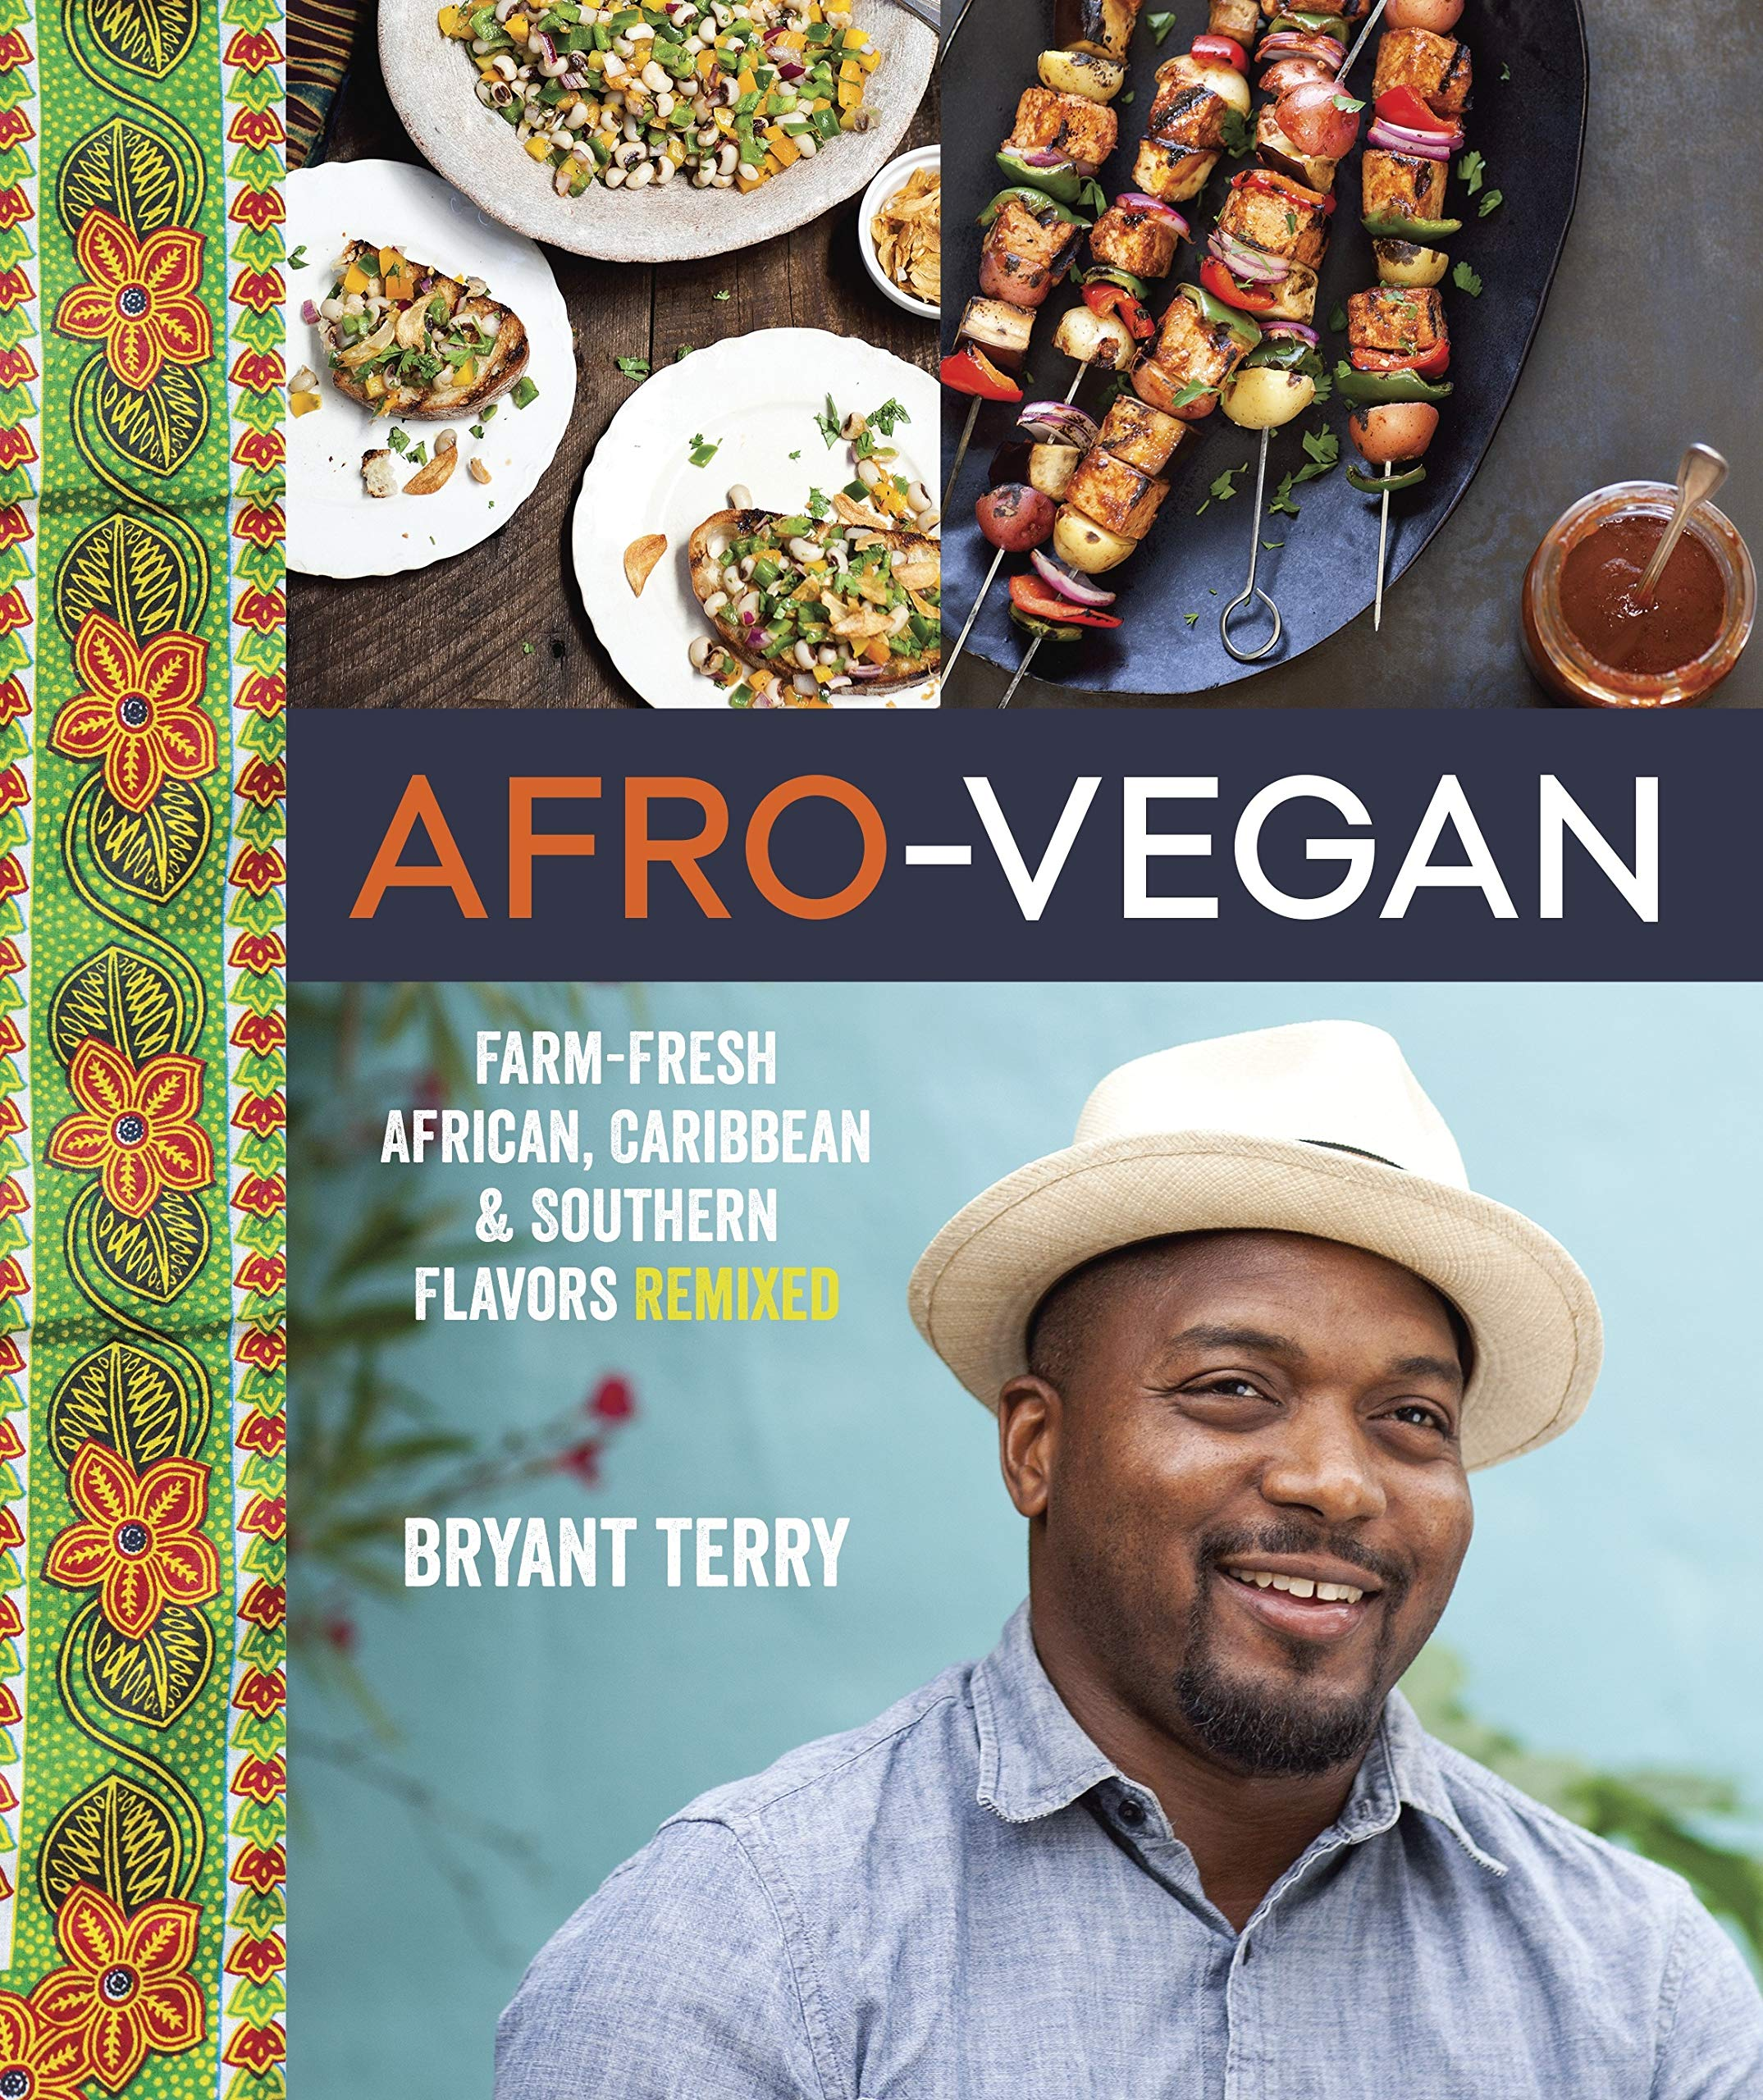 Afro Vegan Farm Fresh African Caribbean And Southern Flavors Remixed A Cookbook Terry Bryant 0884744135217 Amazon Com Books